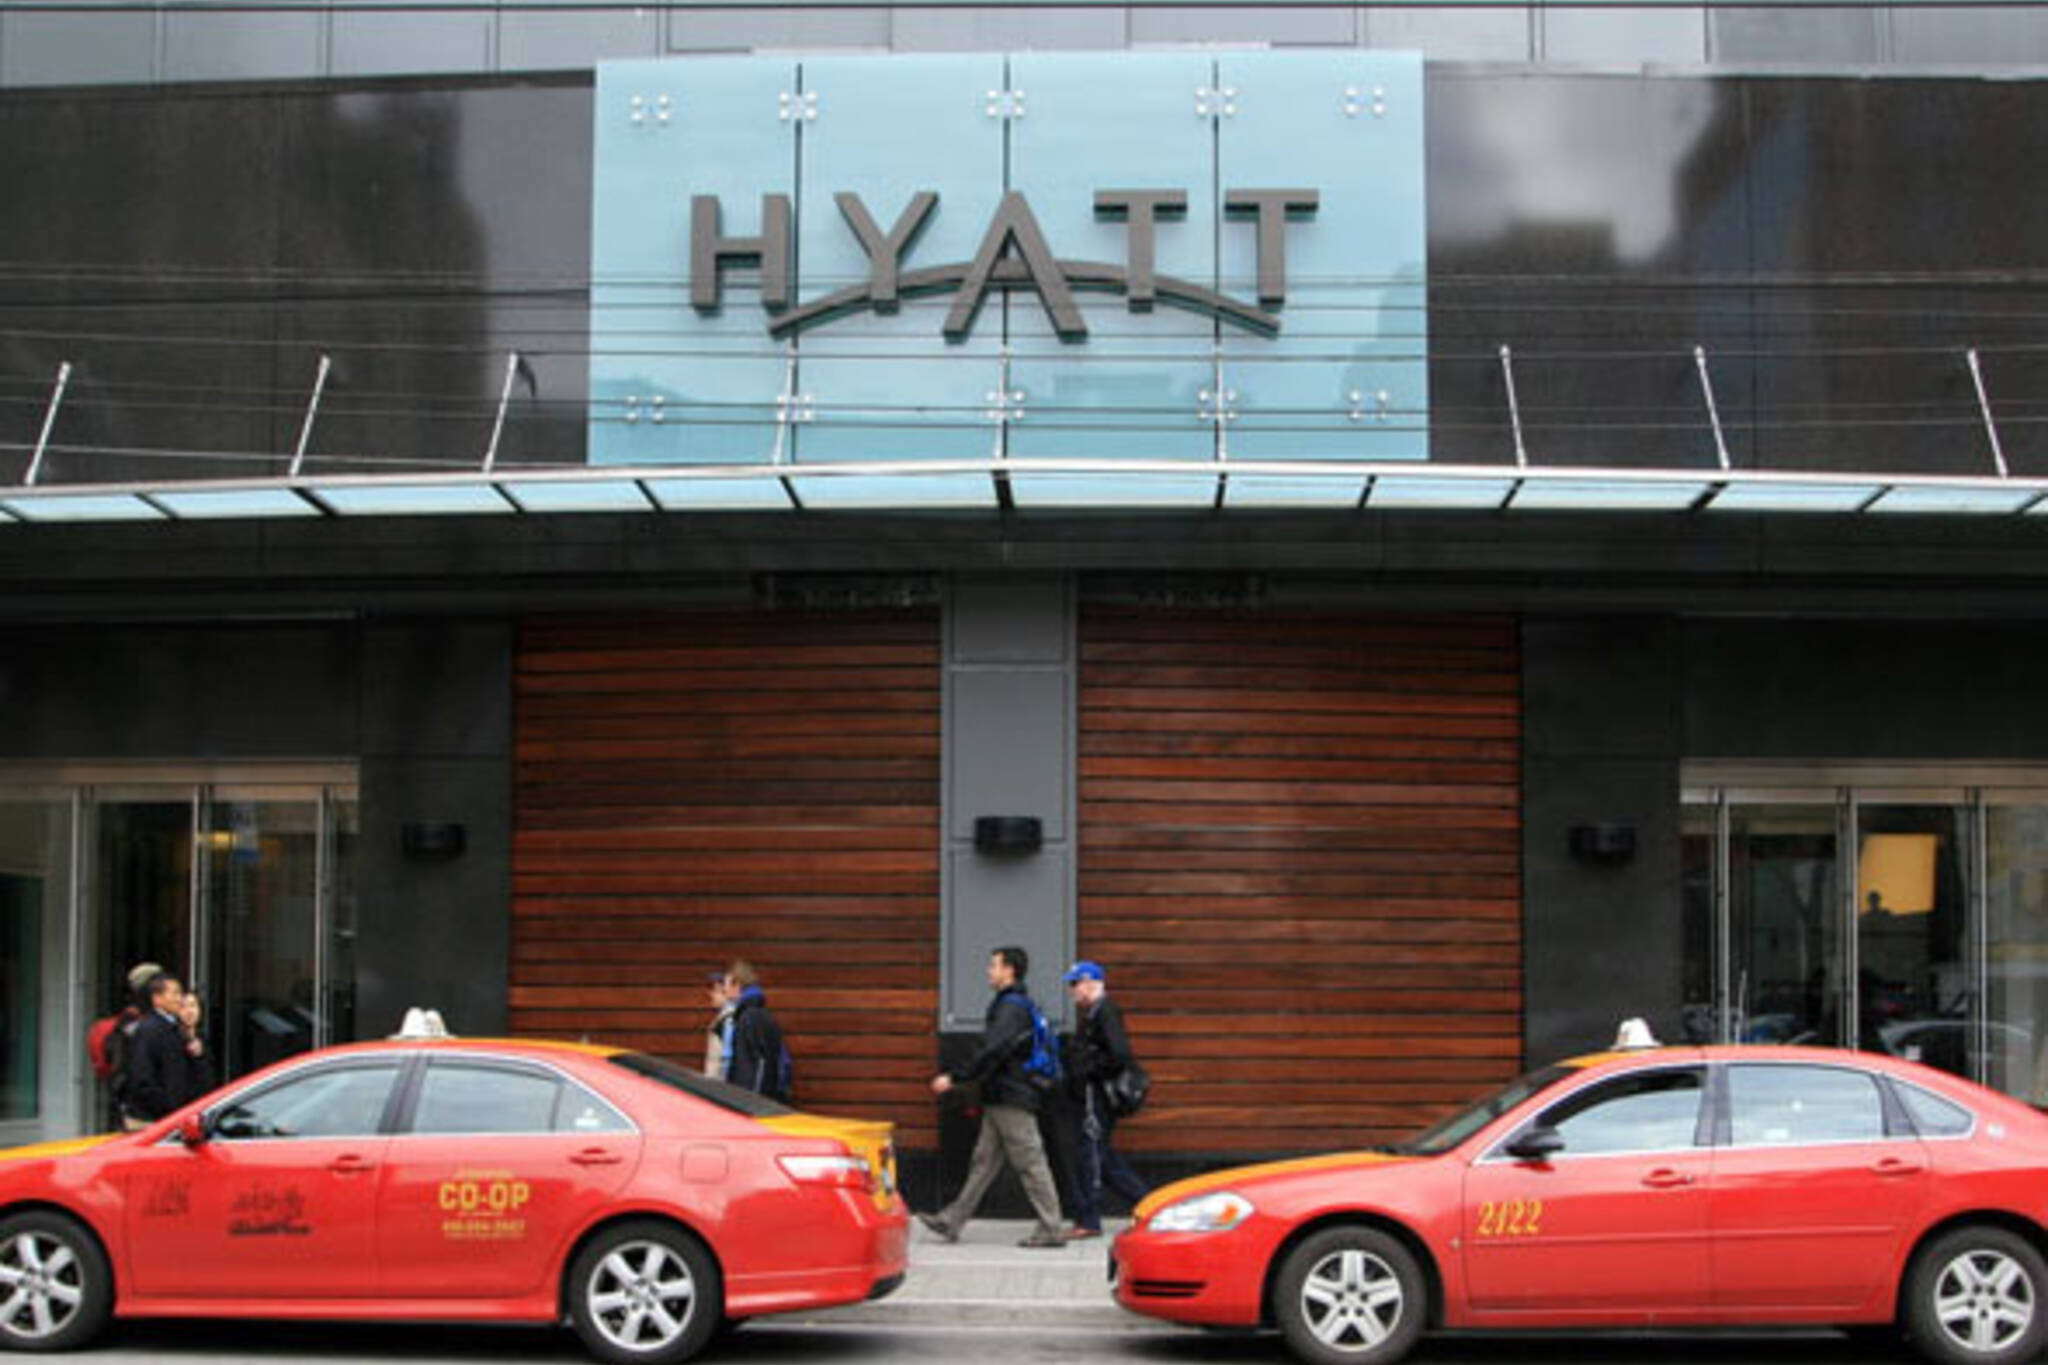 Hyatt King West Toronto